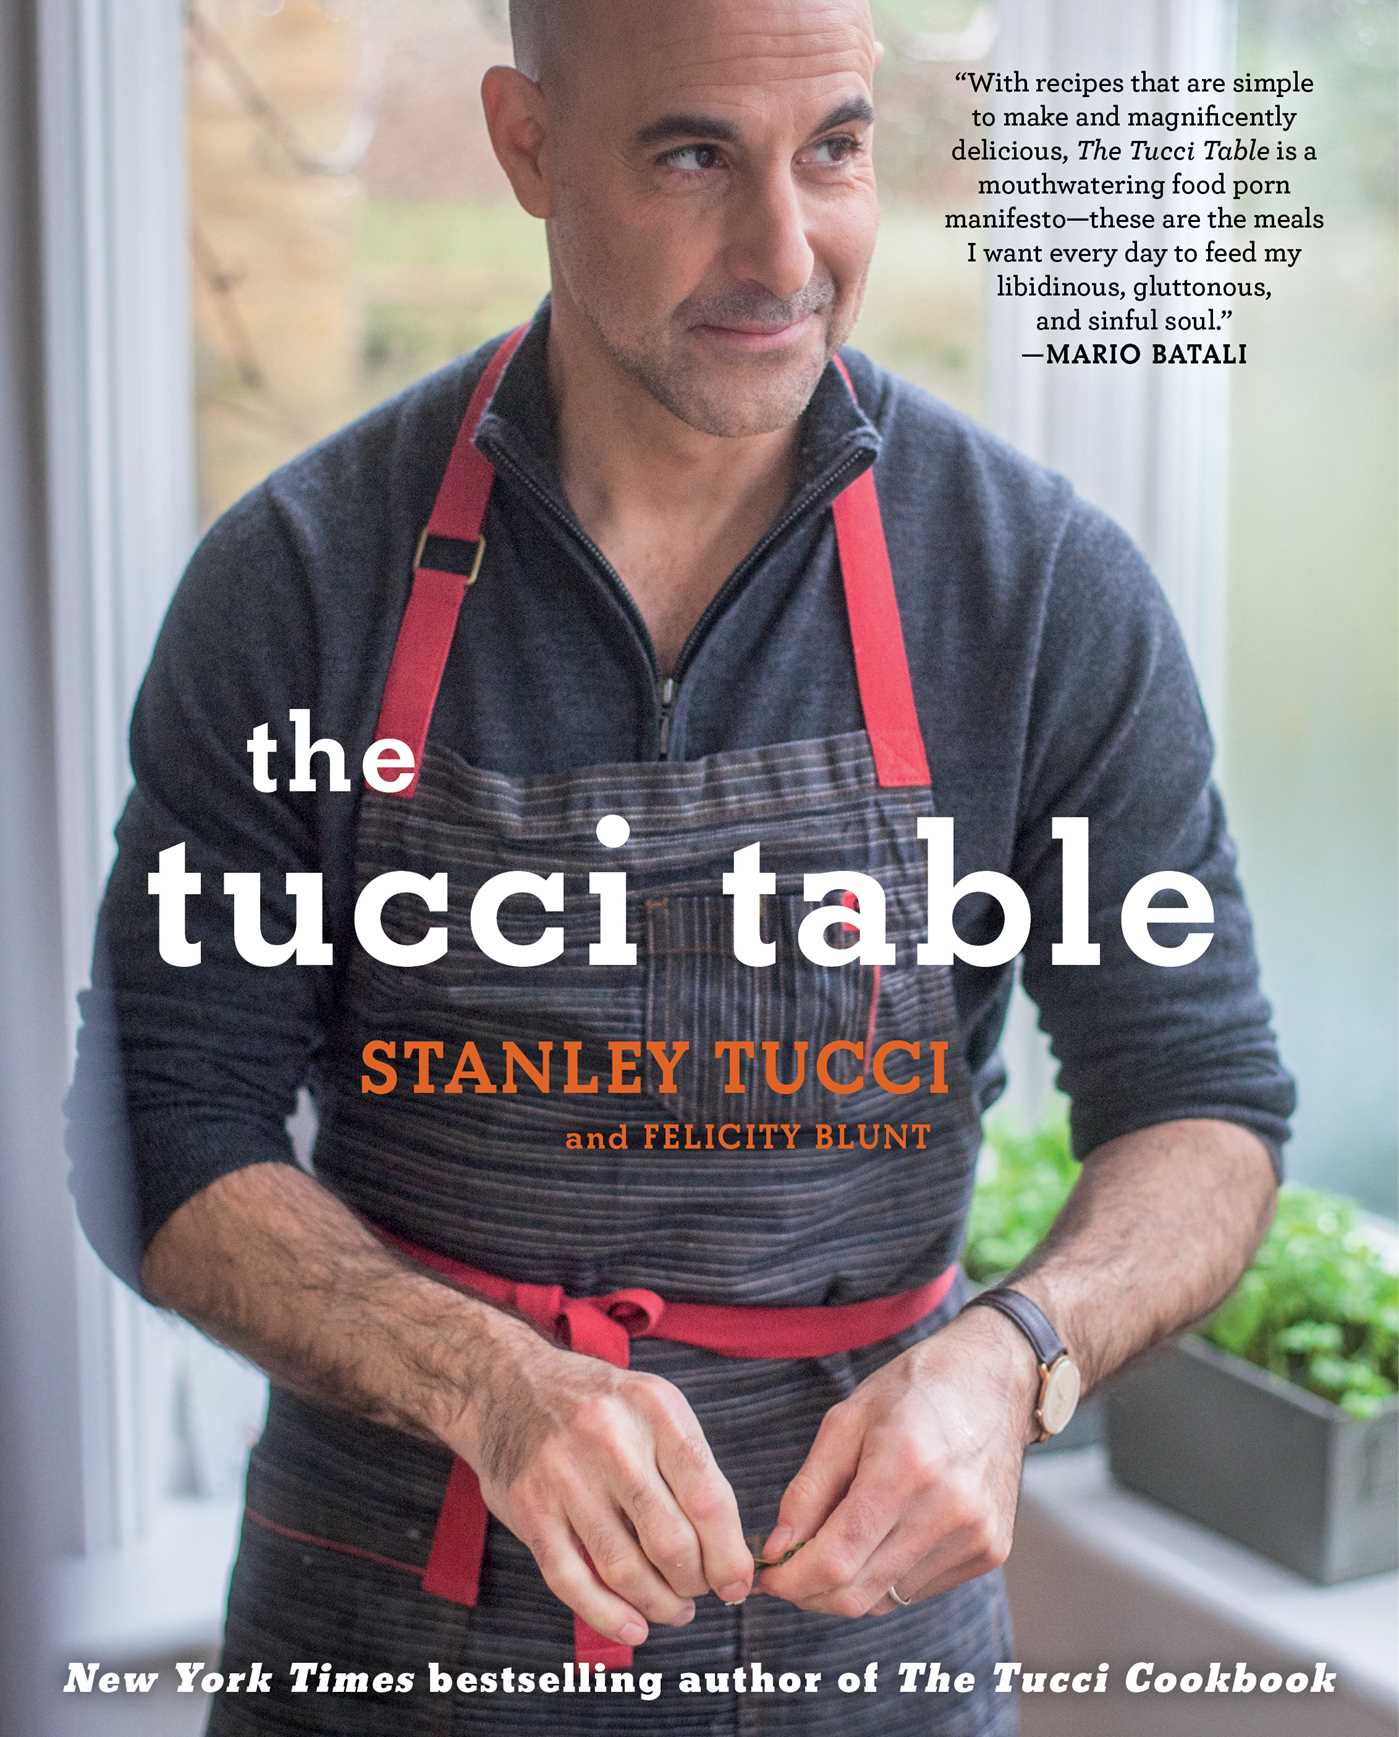 Tucci-table-9781476738574_hr